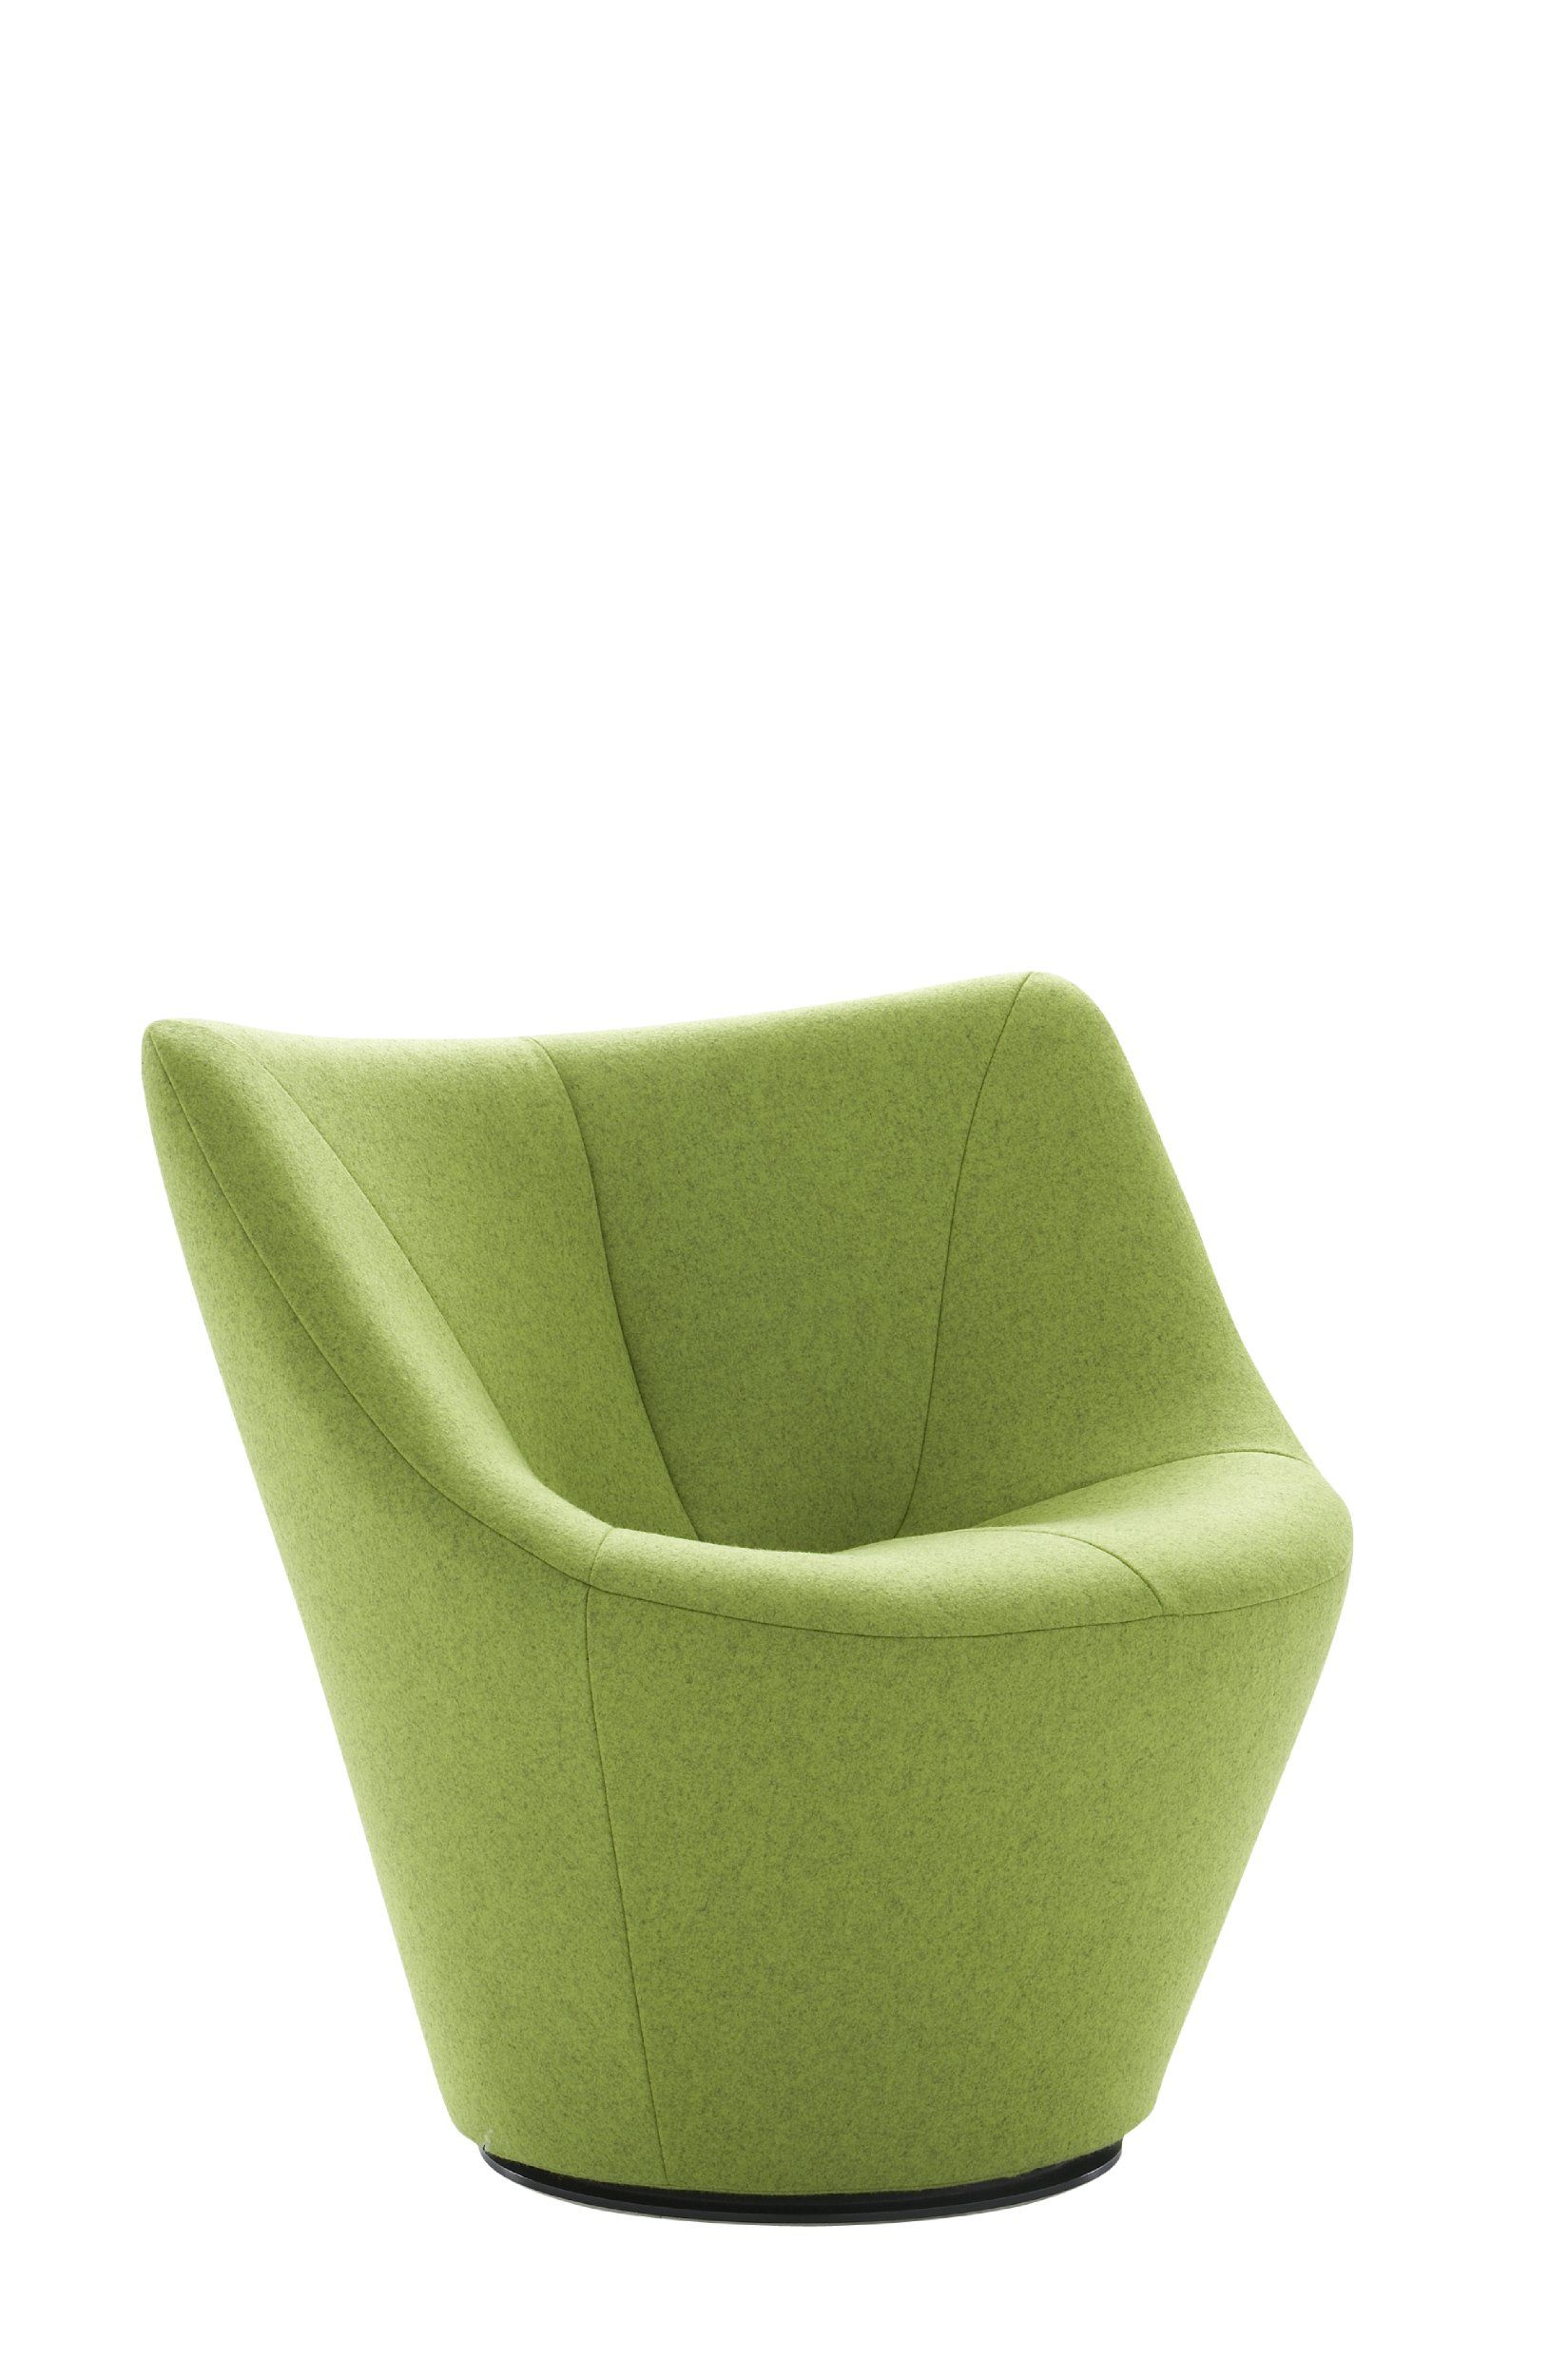 mushroom bean bag chair and a half rocker glider anda by pierre paulin available at your local linea